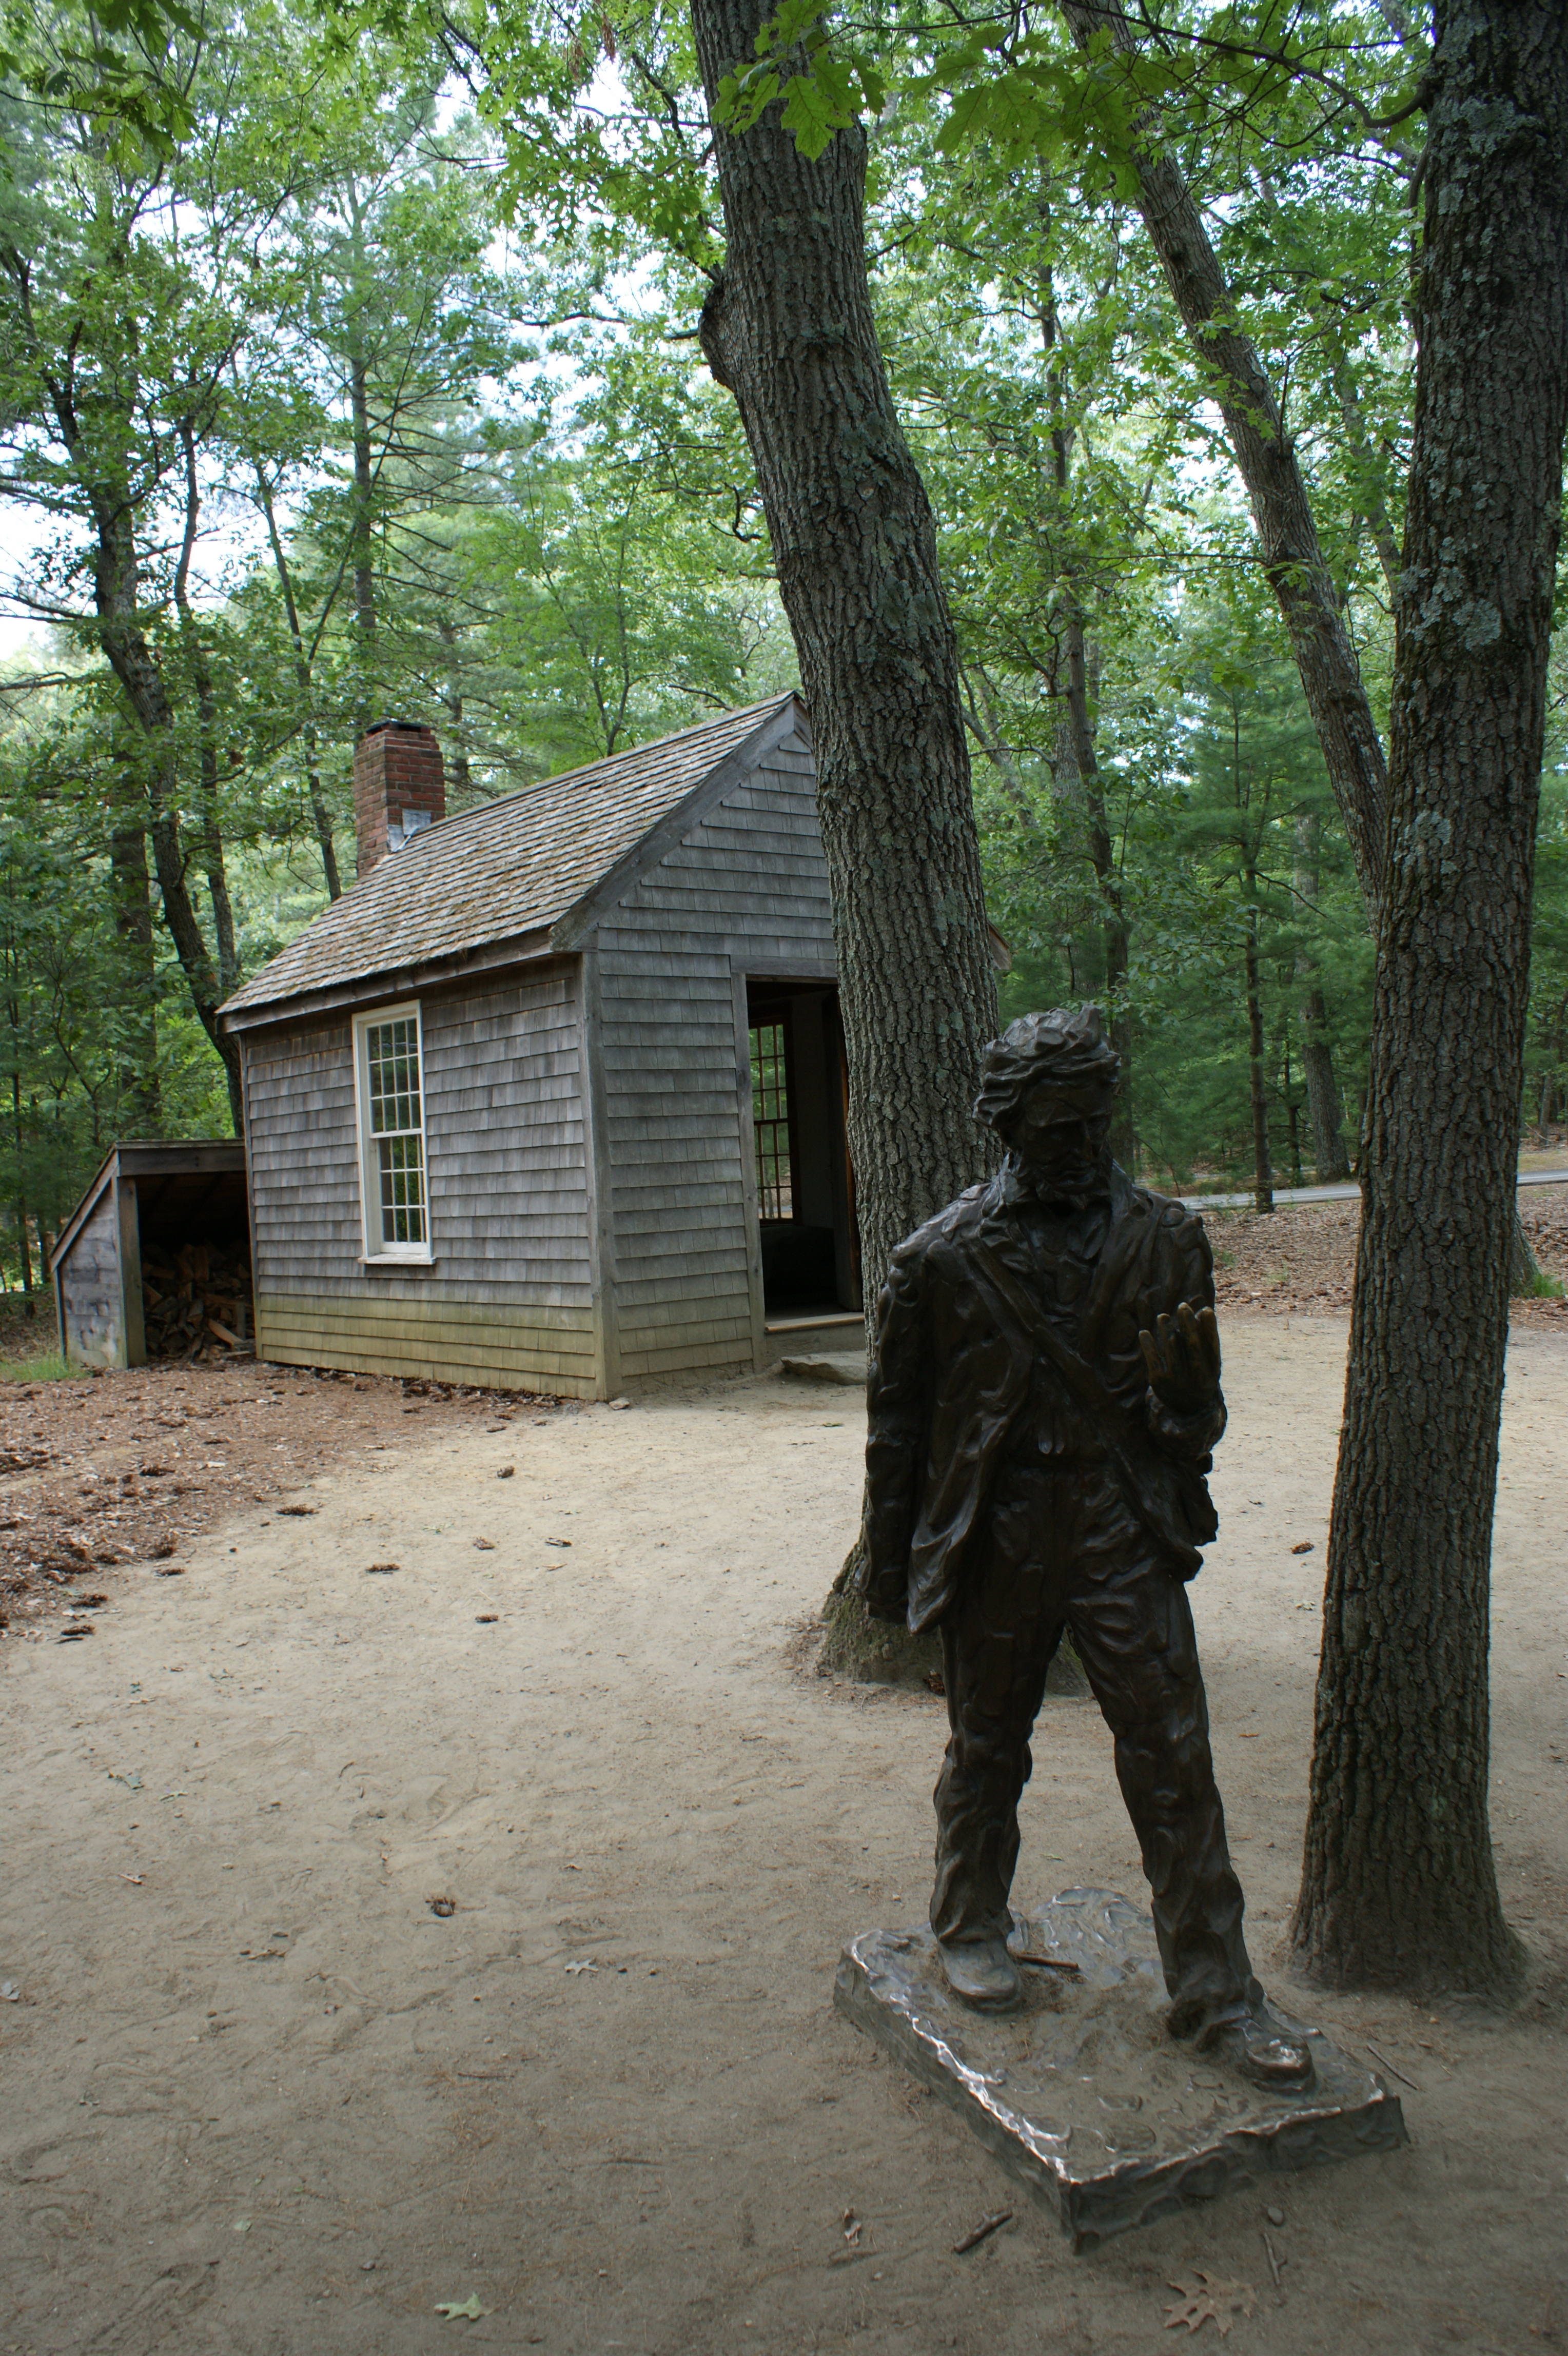 photo essay a stop at walden pond on thoreau s birthday lettershead in a stones throw of this a replica of the cabin where thoreau lived and